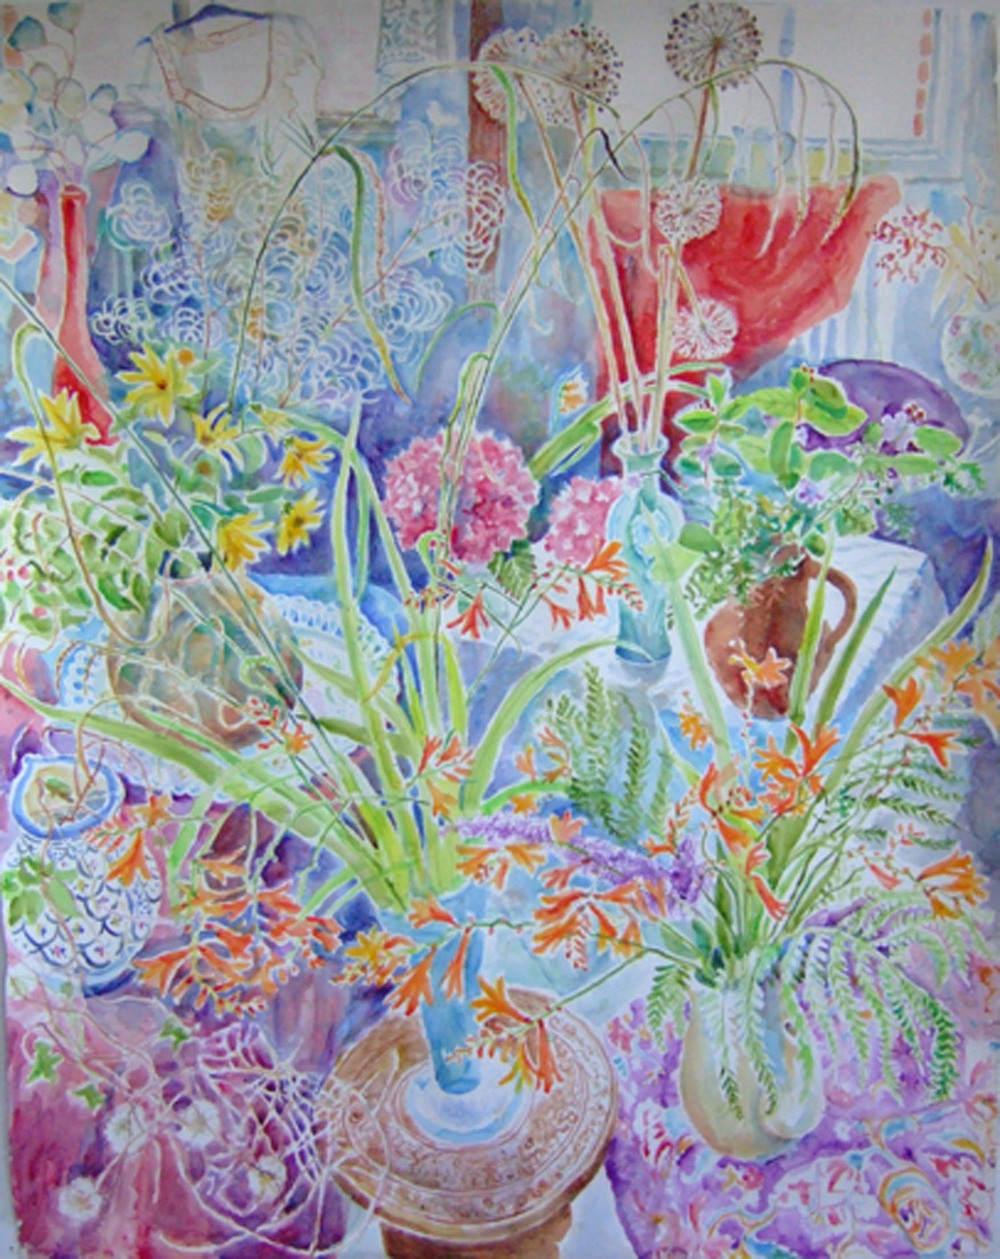 Sarah longley_-_Garden Flower_watercolour_152.5 x 122cm.jpg